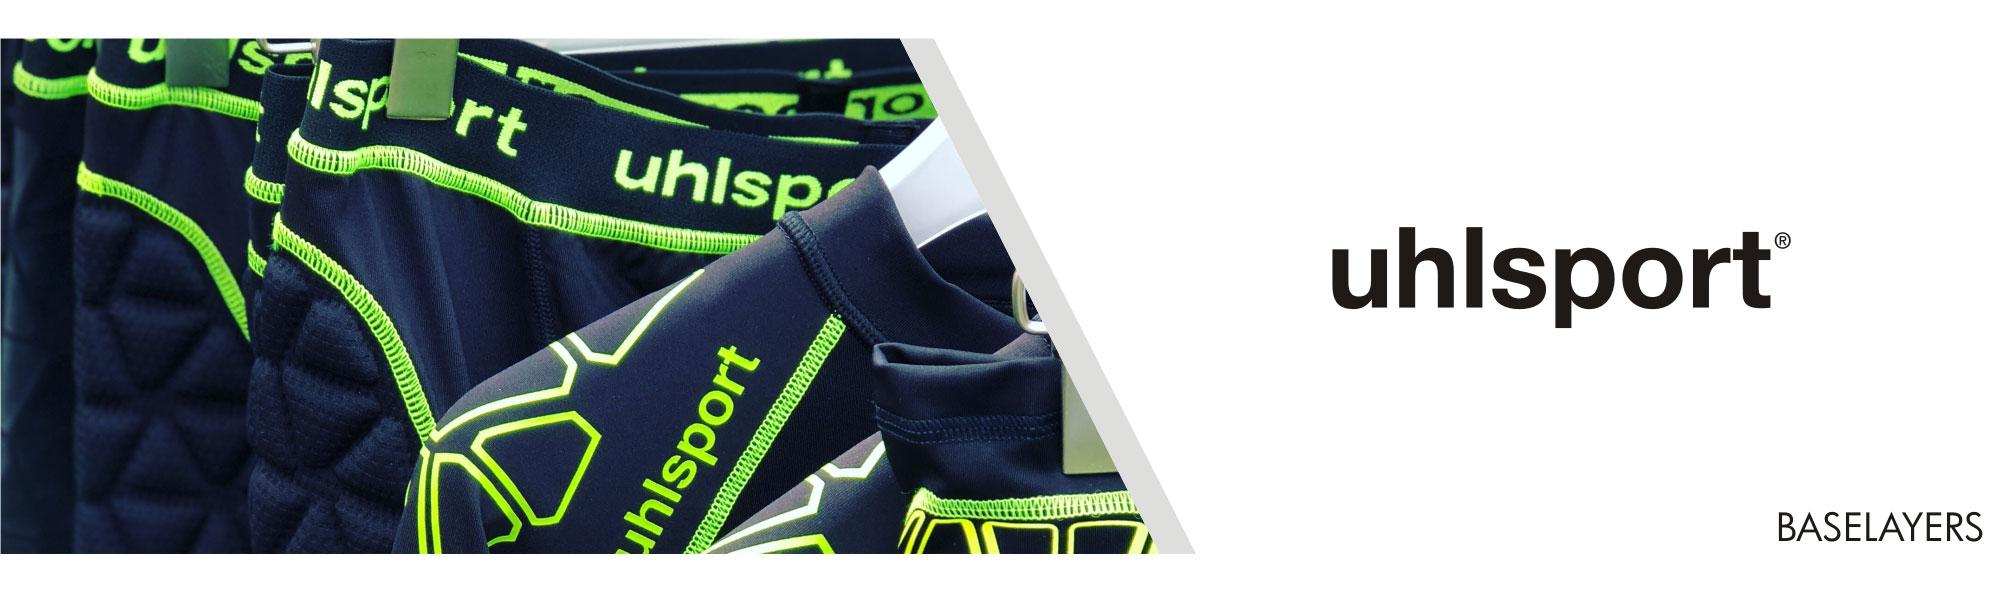 Uhlsport BionikFrame padded goalkeeper base layer